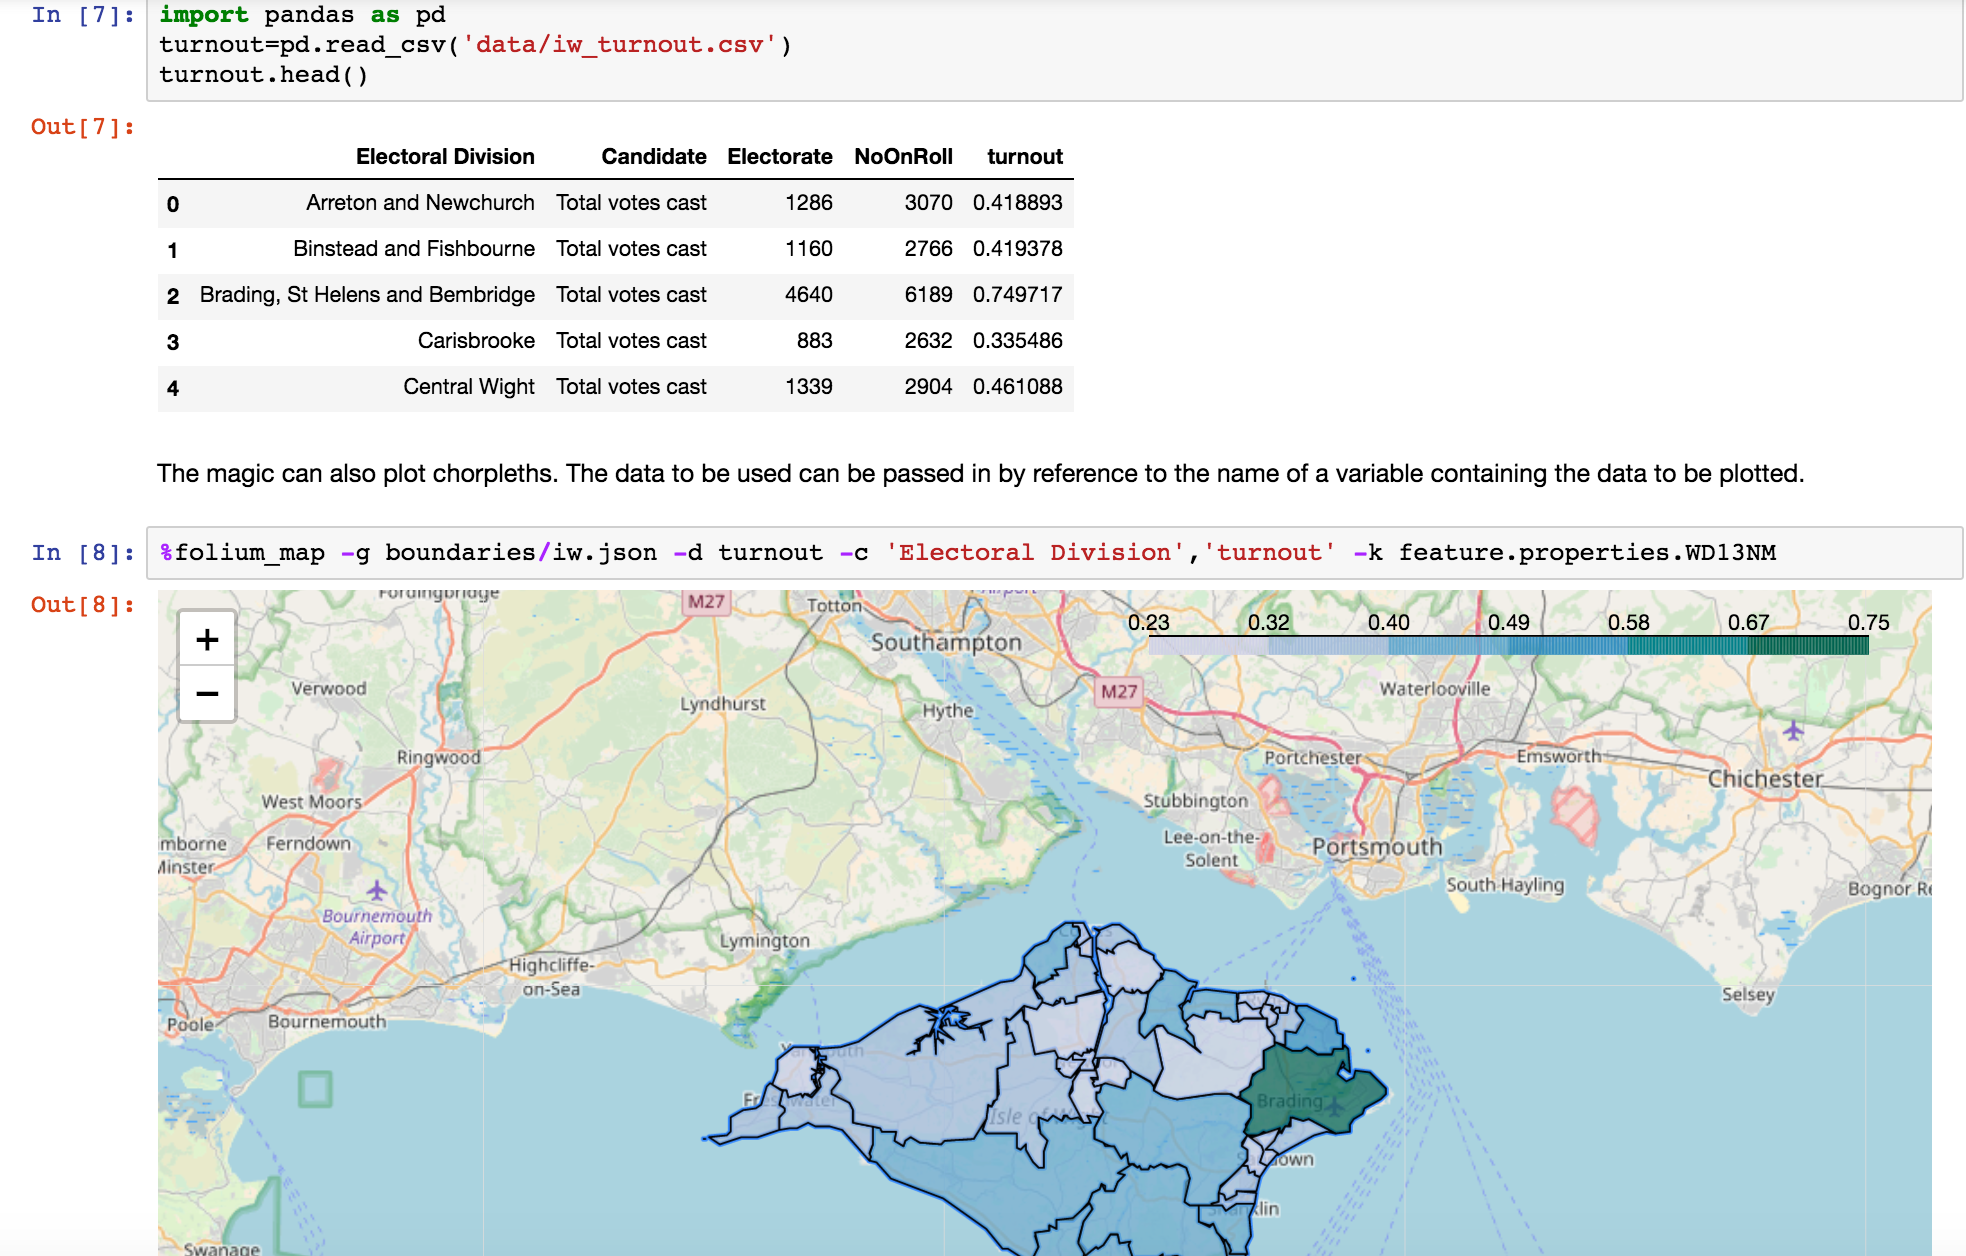 Embedding folium Maps In Jupyter Notebooks Using IPython